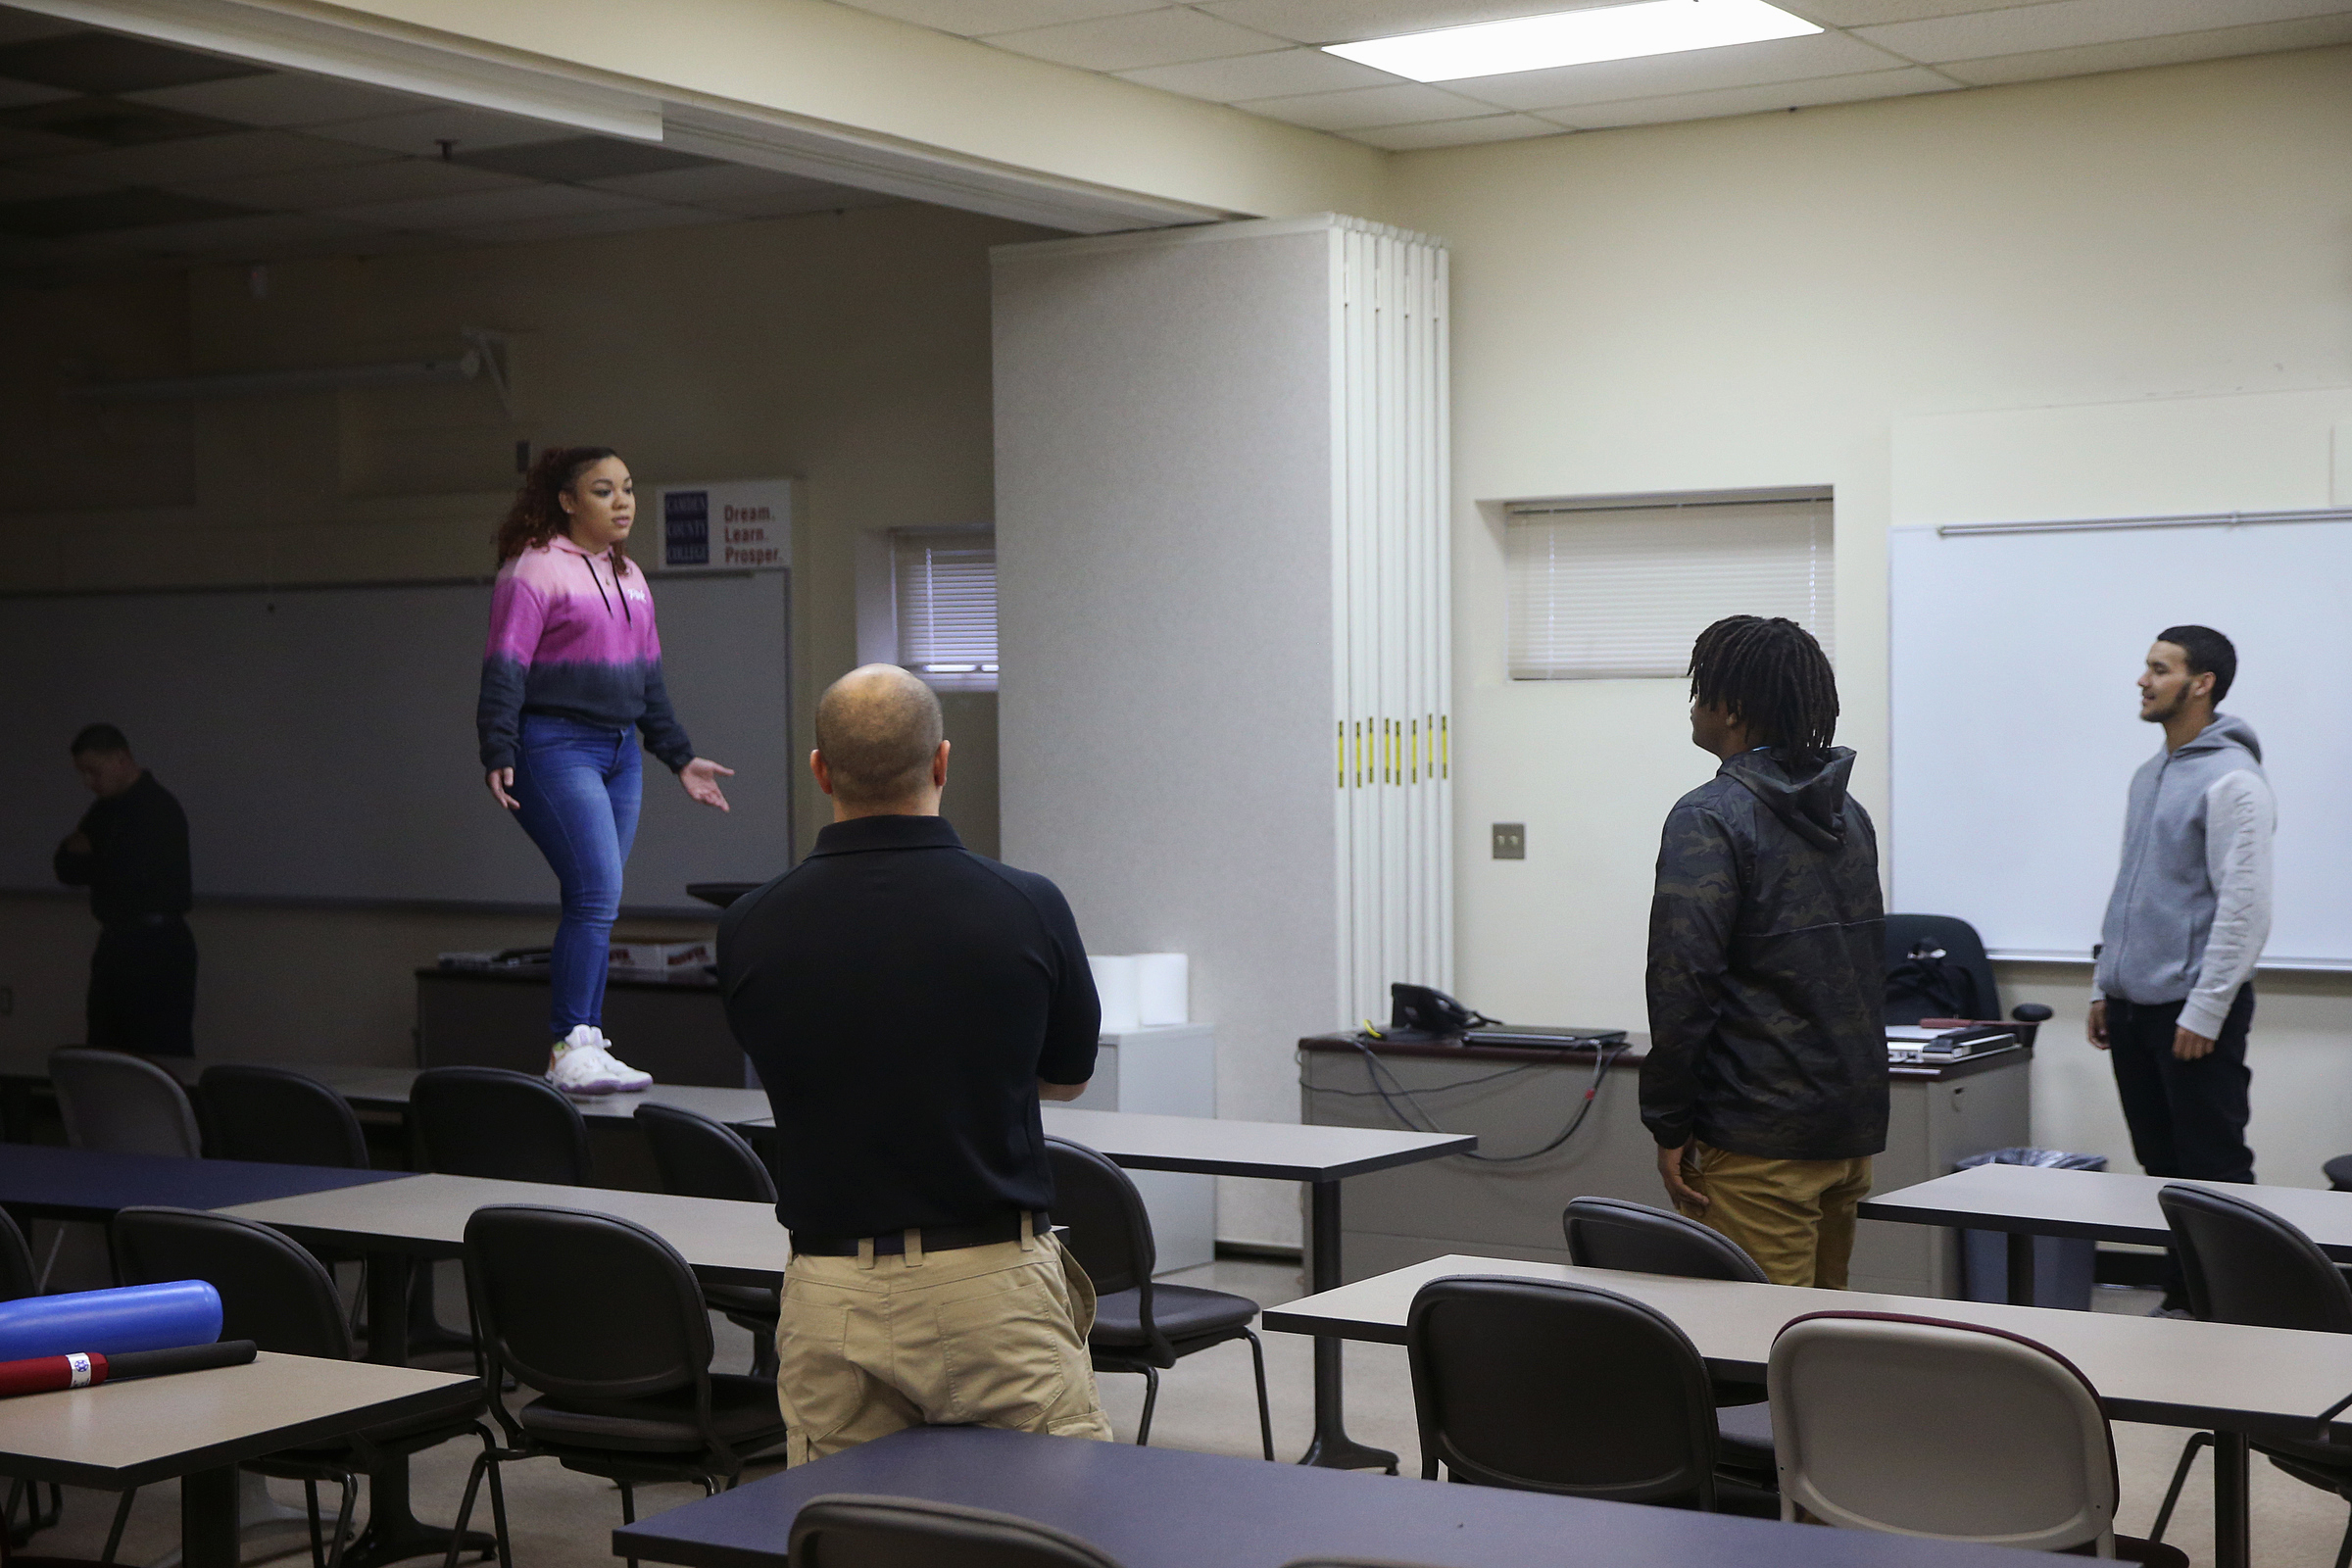 From left, Officer Vilmary Otero role-plays a suicidal woman as Sgt. Chris Sarlo watches Woodrow Wilson High School senior Vaughn Williams, 18, and junior Jose Irene, 17, de-escalate the situation in a training exercise at the Camden County Police Academy in Blackwood, N.J., on Friday, March 2, 2018. Camden County police and Woodrow Wilson students are participating in a youth-police engagement program facilitated by the New York University School of Law´s Policing Project. TIM TAI / Staff Photographer